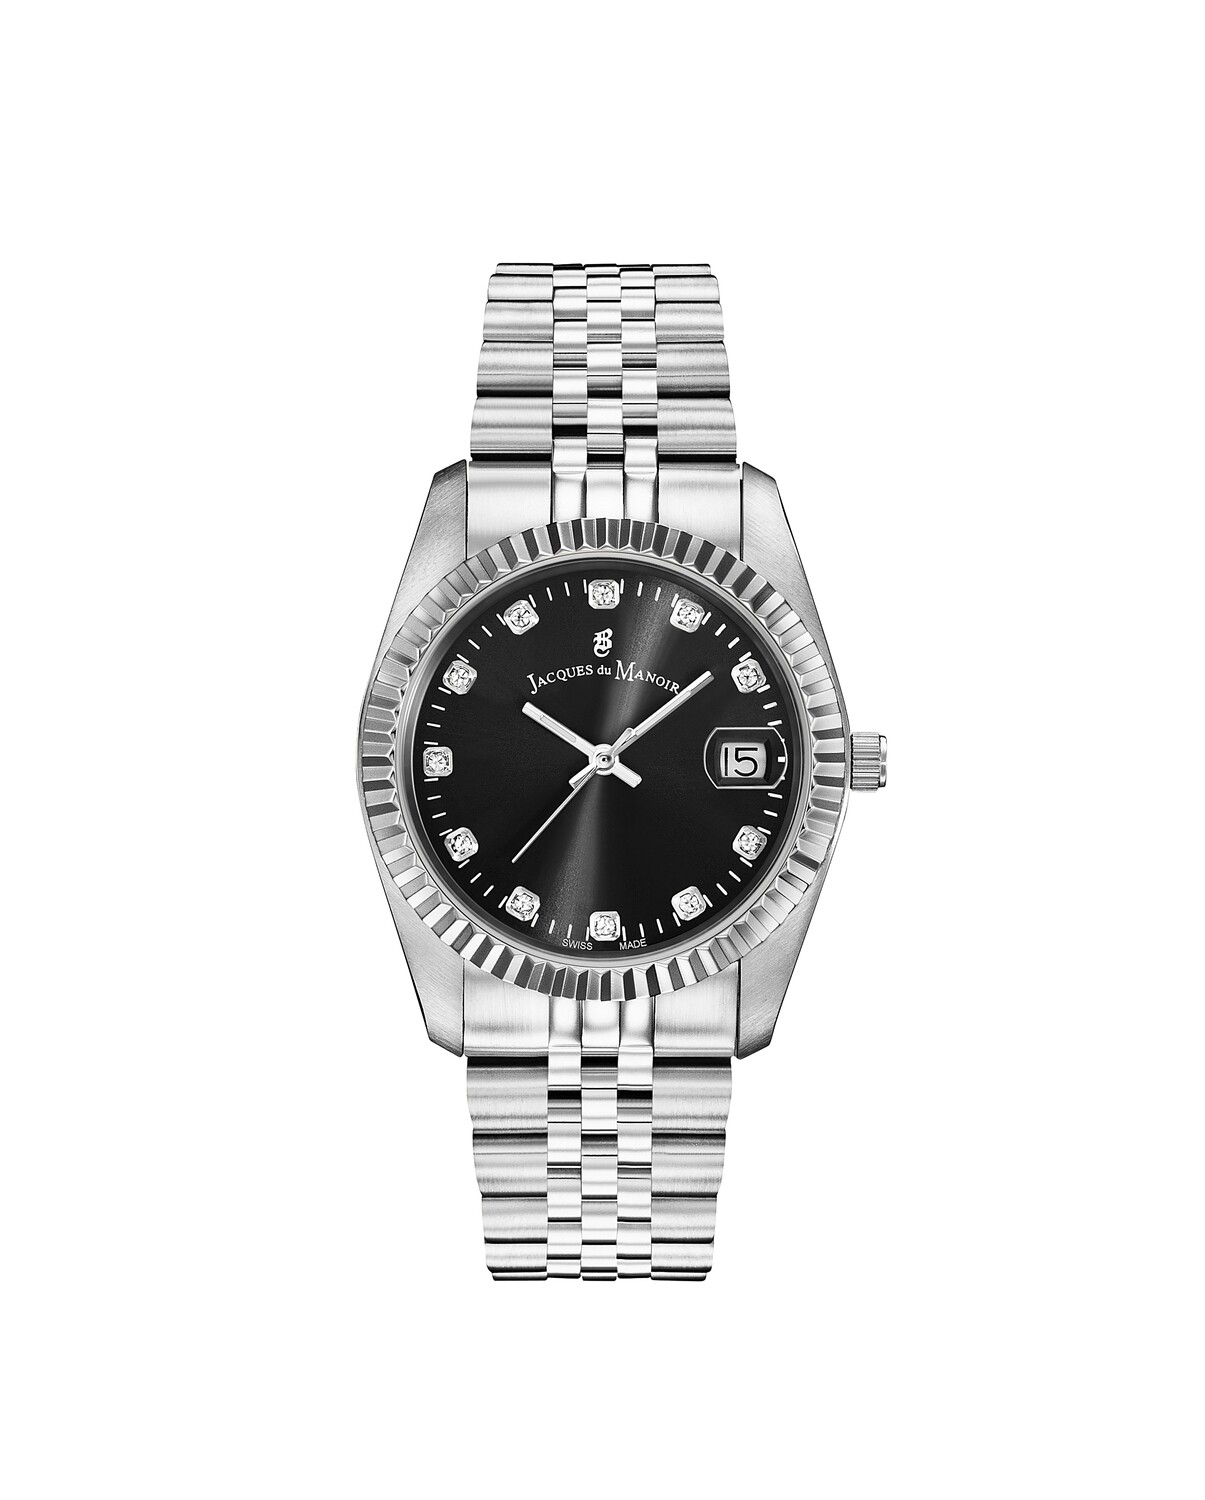 Inspiration Stainless Steel case, BLACK Dial, Stainless Steel (no Plating) Bracelet, 36.0 mm